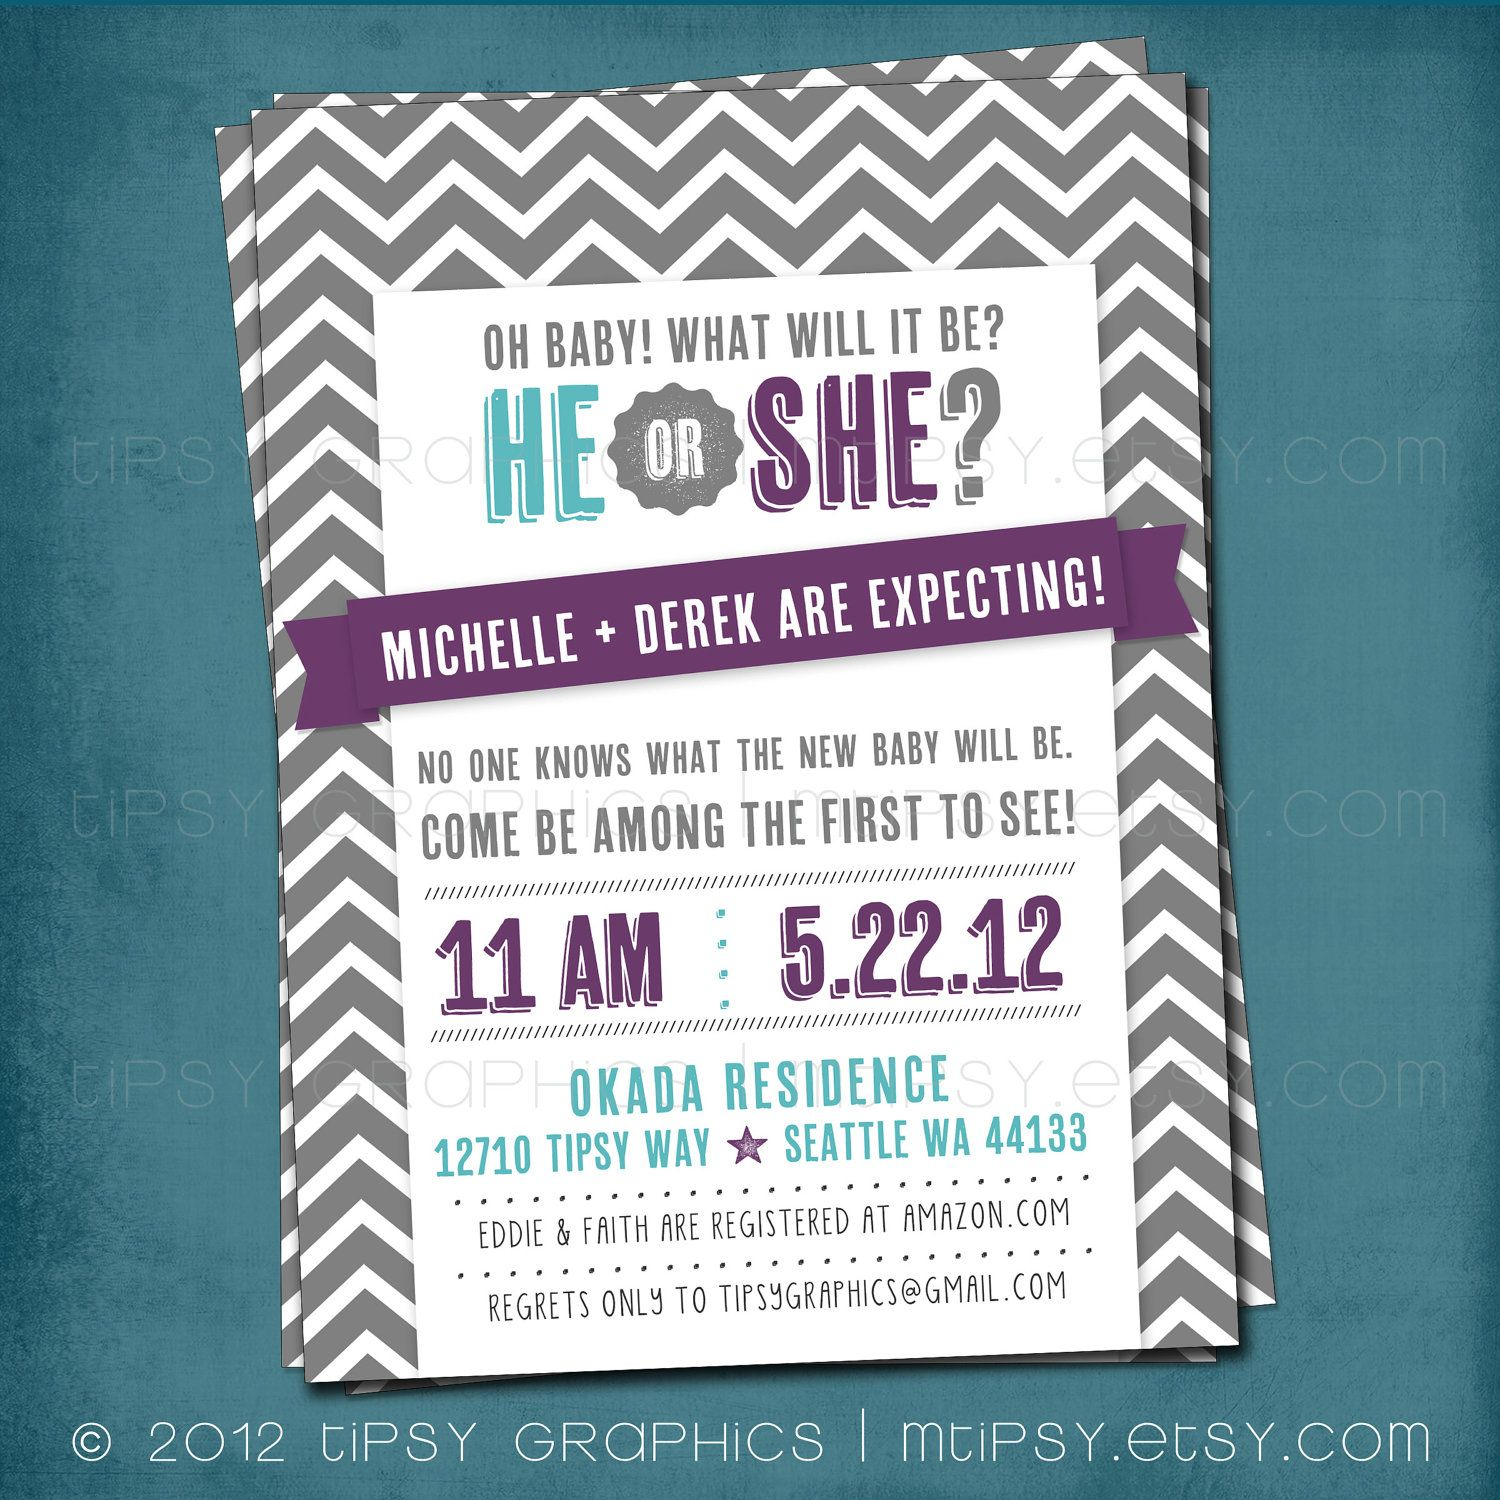 He or she chevron gender reveal gender neutral baby shower chevron gender reveal gender neutral baby shower invitation any text and filmwisefo Image collections